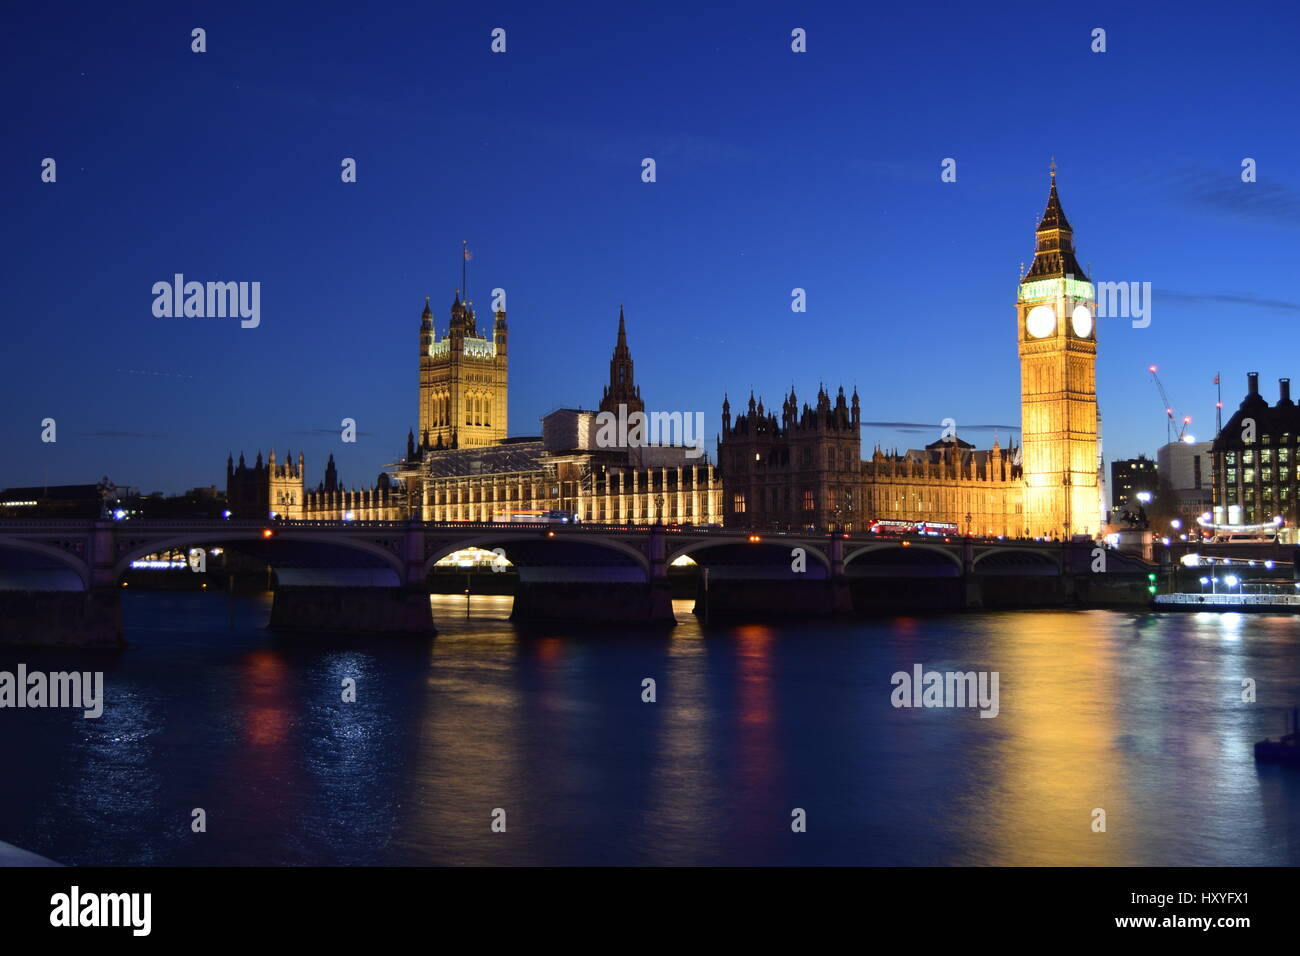 Big Ben and Houses of Parliament at night Stock Photo